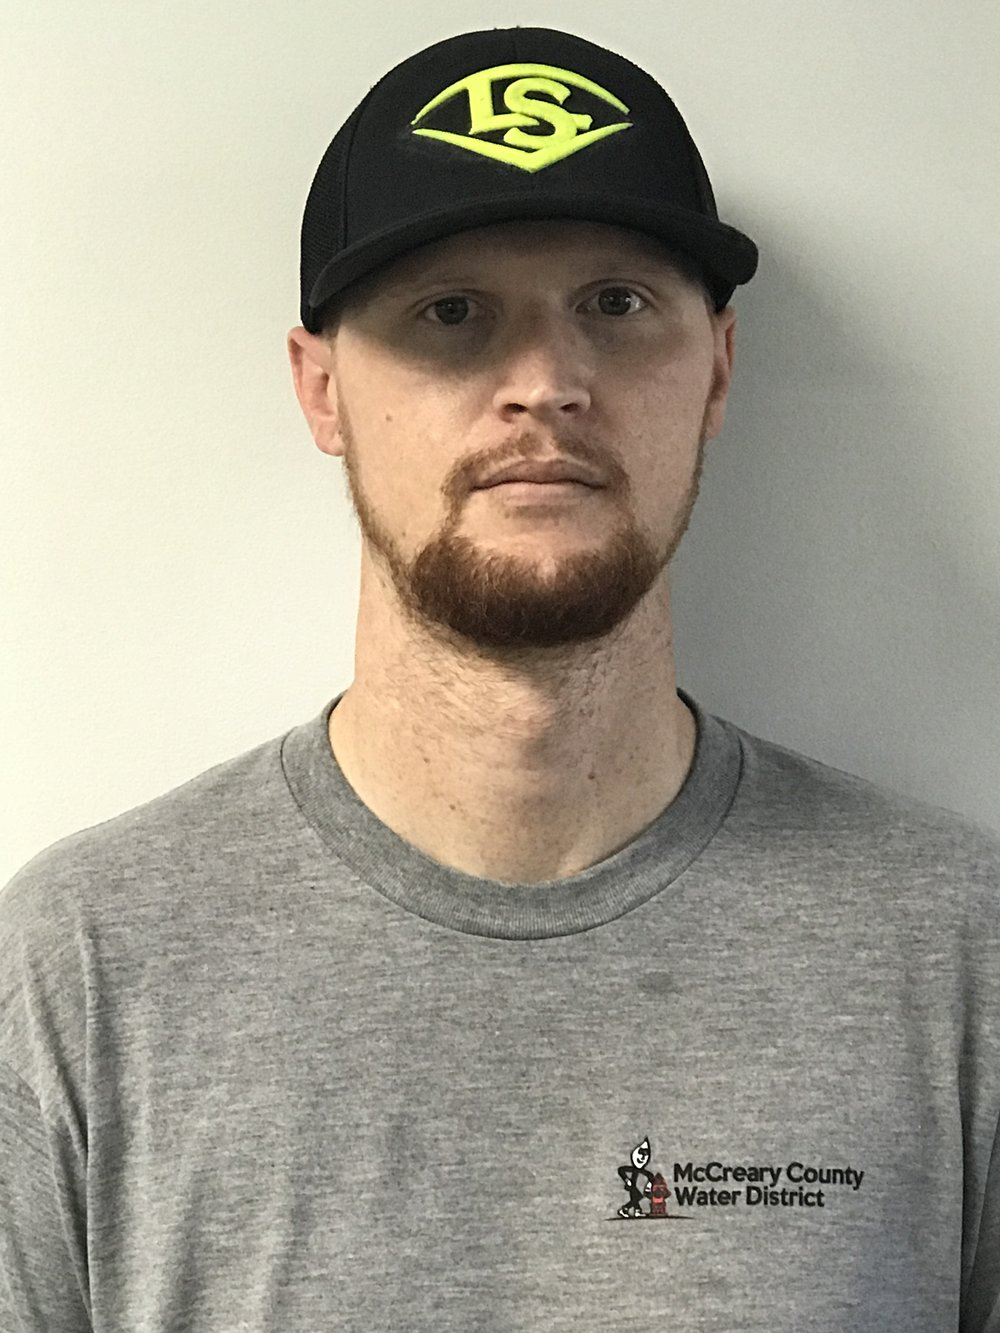 TYLER TROXELL  has worked at the water district since 2008. He holds Drinking Water Treatment Class IV and Drinking Water Distribution Class III Certifications.